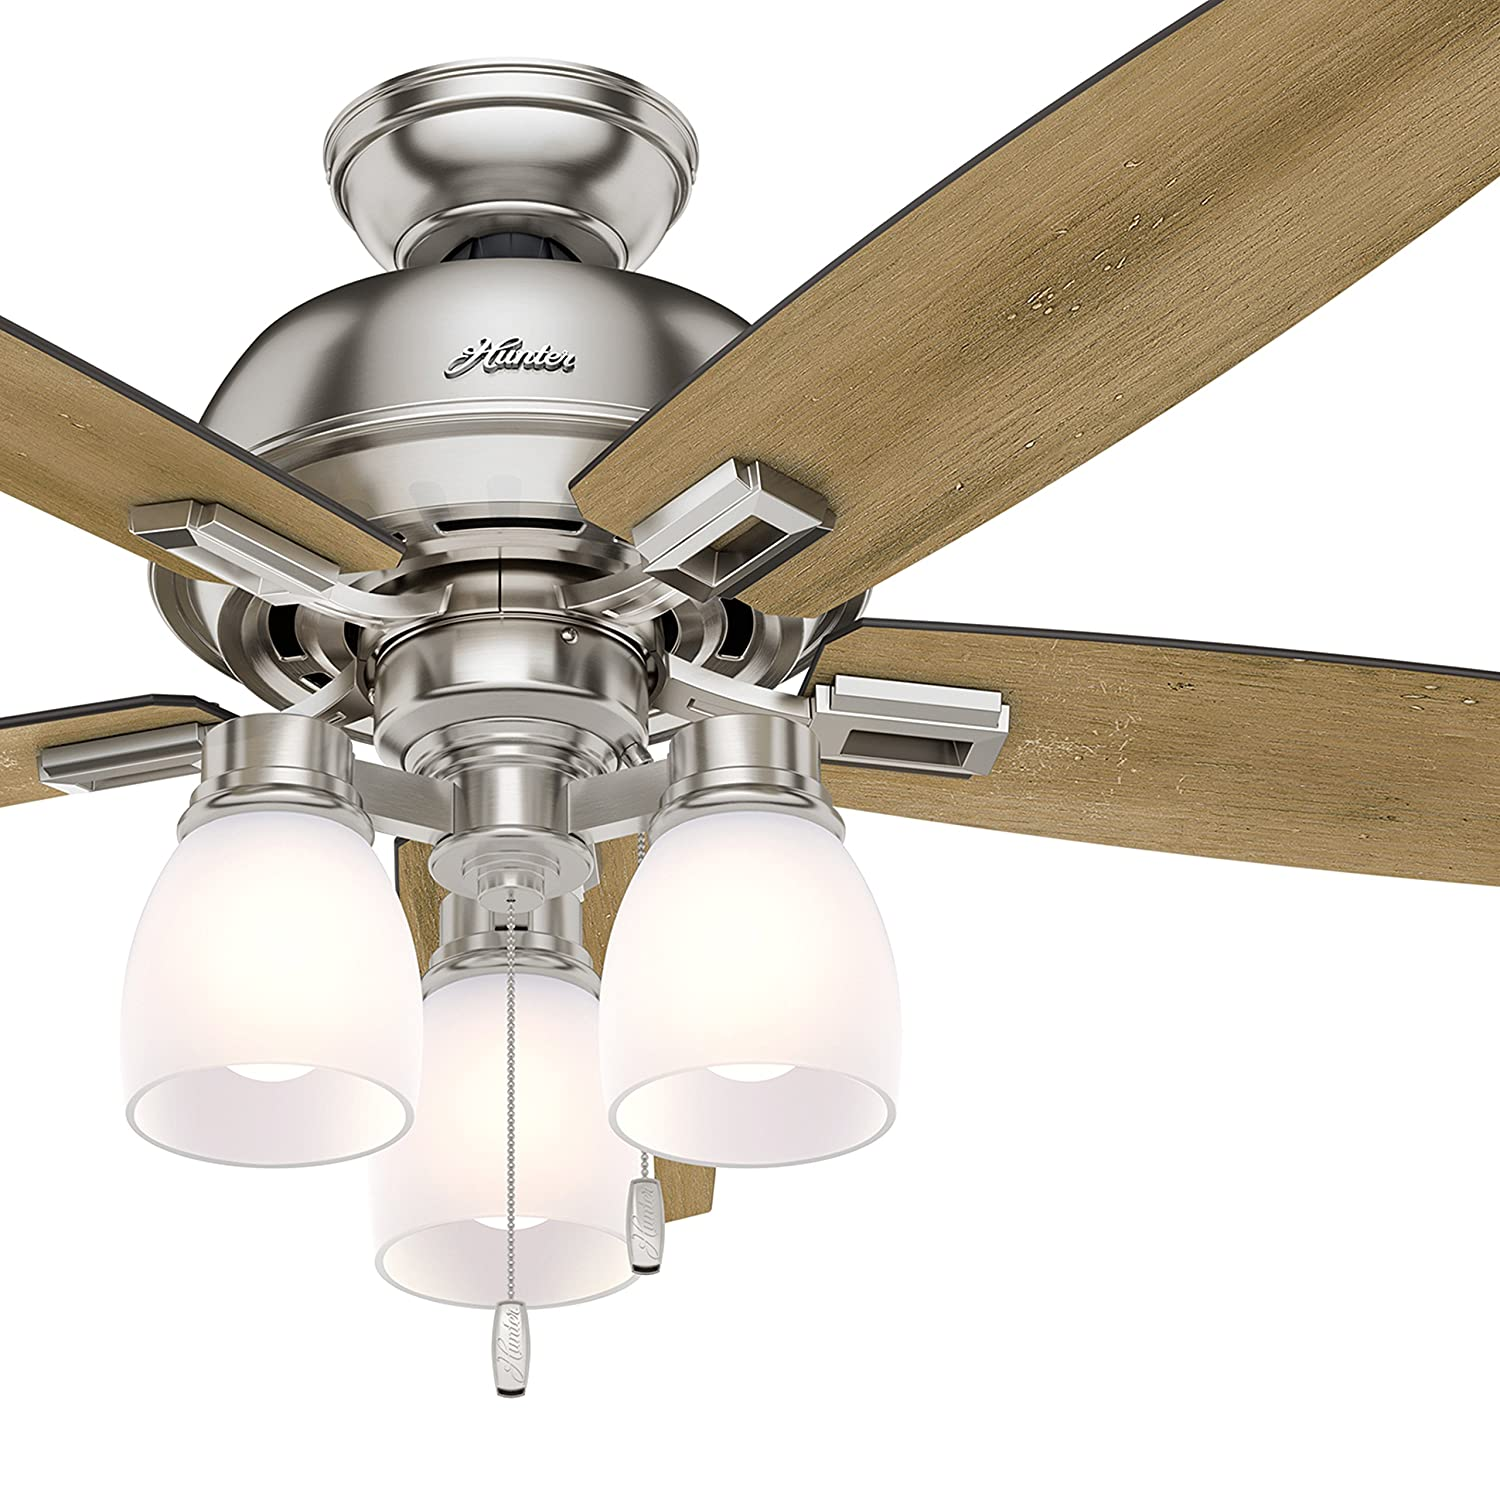 Westinghouse Lighting Westinghoue 7217800 Halley 44-Inch Oil Rubbed Bronze Indoor Outdoor Ceiling, Dimmable LED Light Kit with Frosted Opal Glass, Remote Control Included USA FAN,